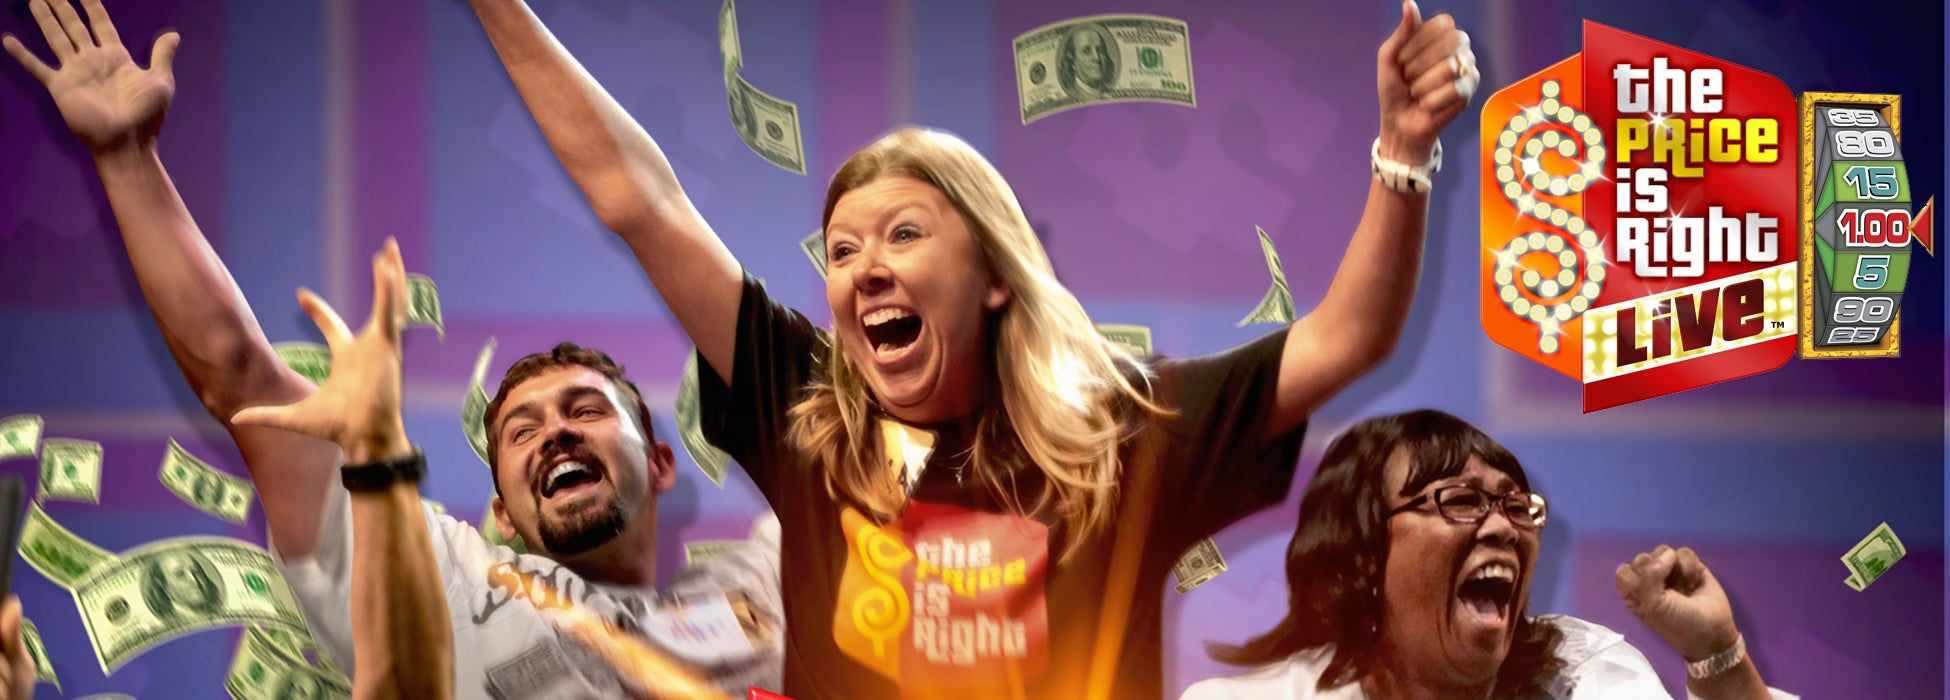 Price Is Right_Event Page_1950_700.jpg